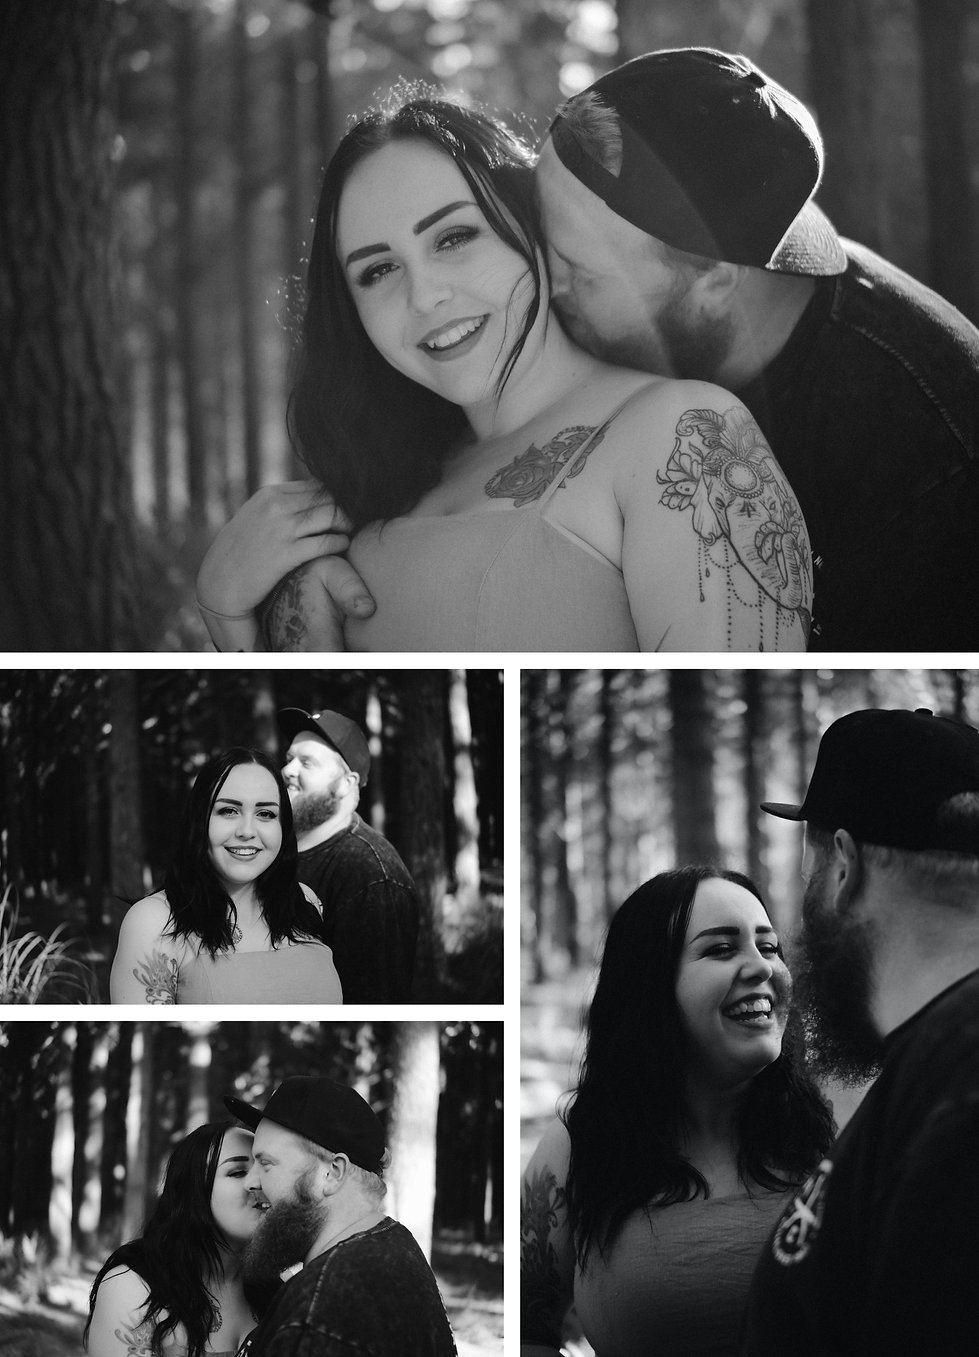 adventuring engagement session captured by wanderlusting lovers in waiuku forest, auckland new zealand